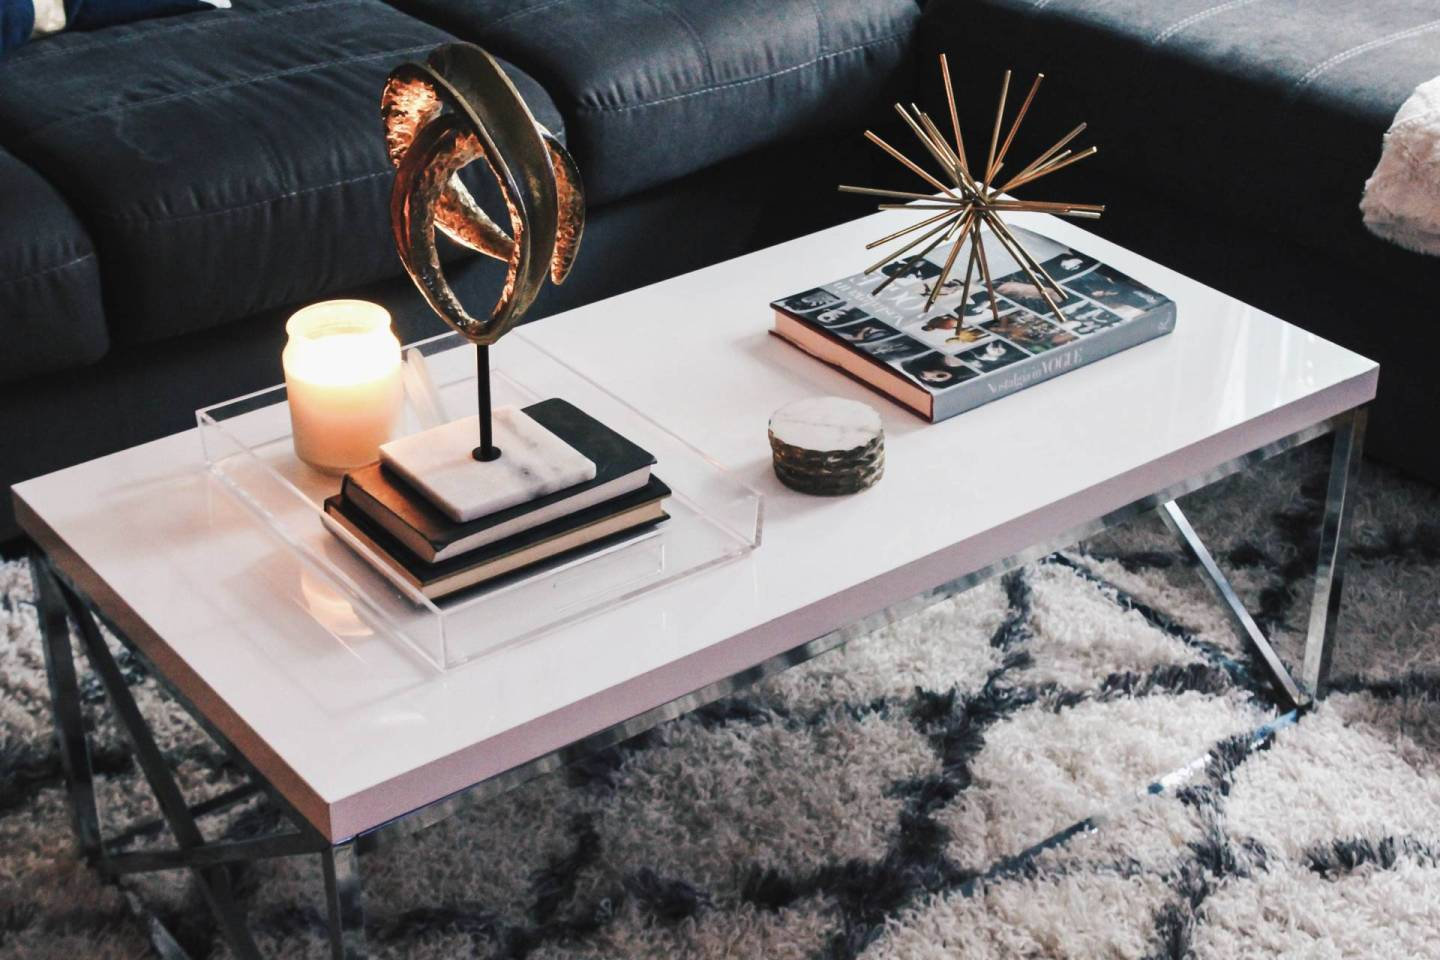 HOME DESIGN: HOW TO STYLE A COFFEE TABLE